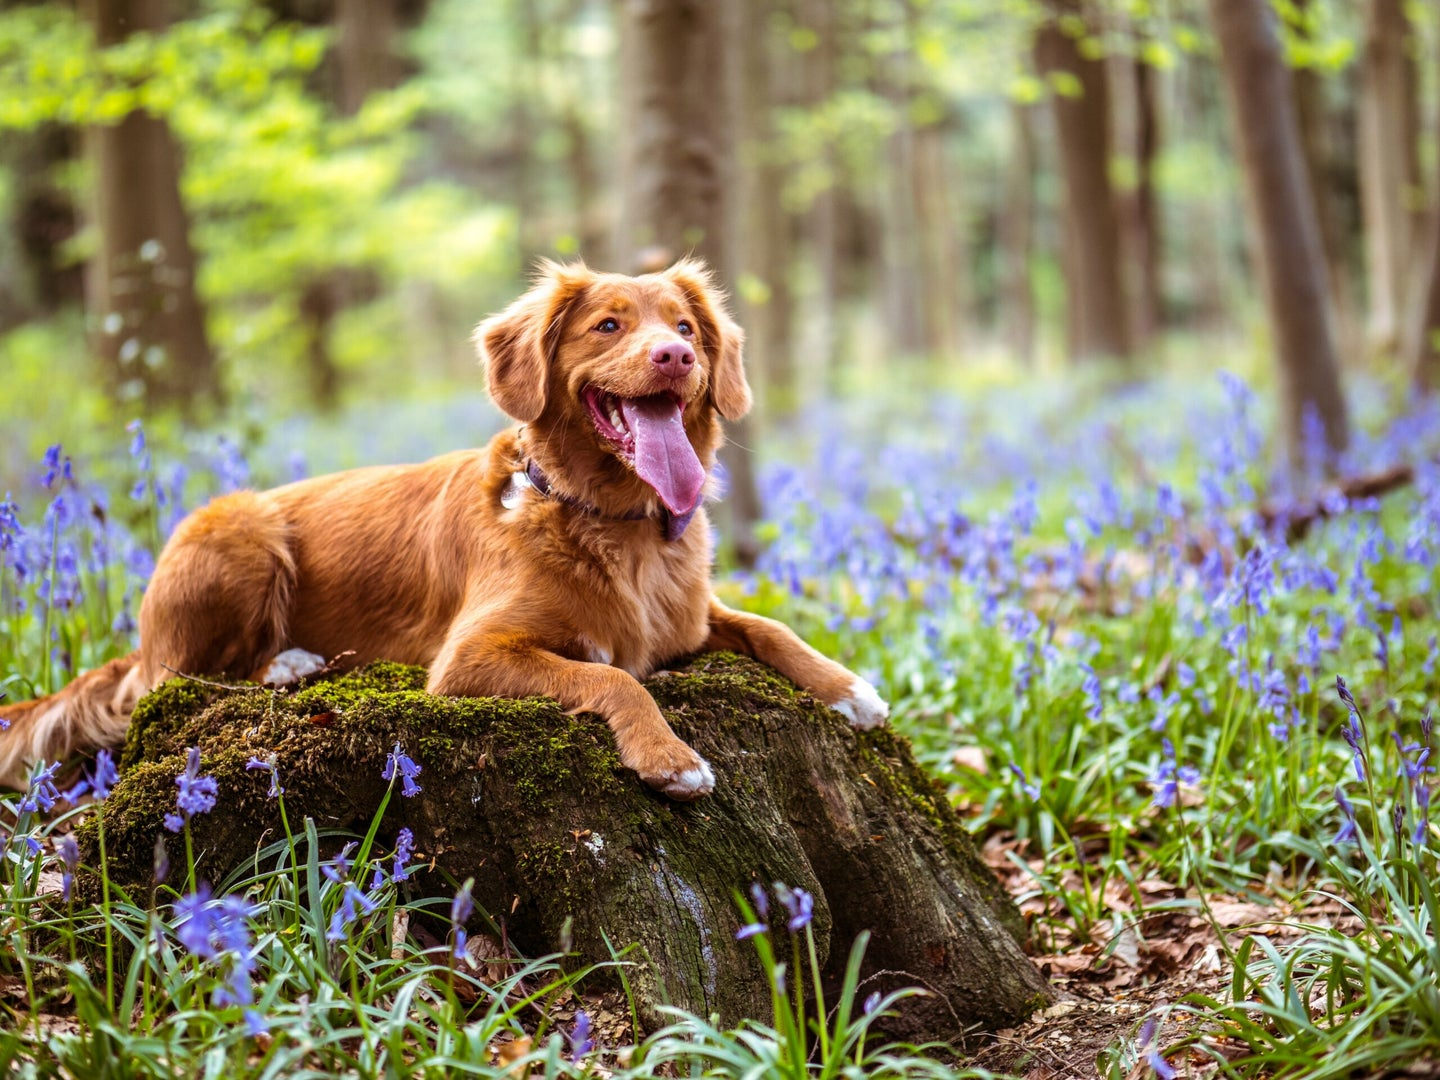 dog sitting on a log in a field of flowers